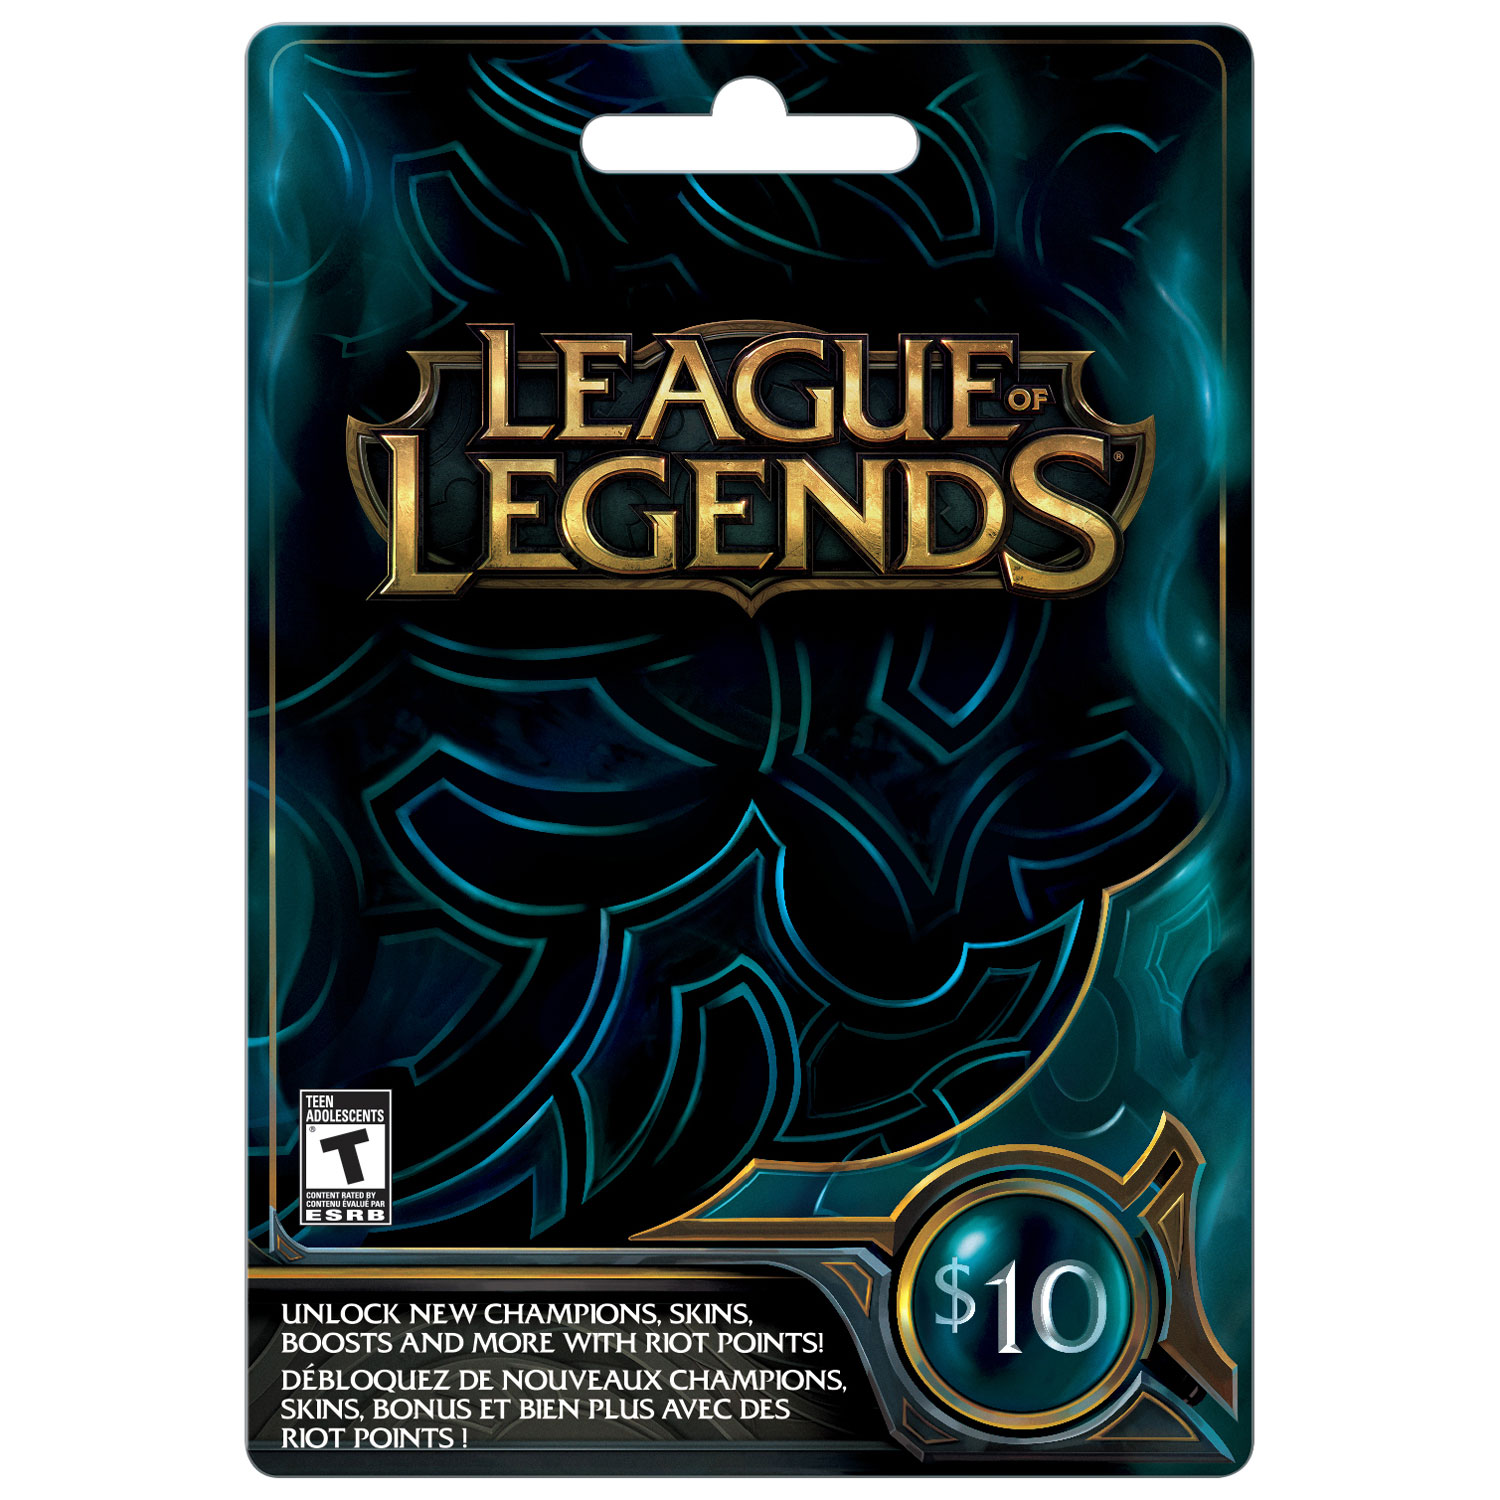 League of Legends $10 Card - In-Store Only : Prepaid Game Cards ...